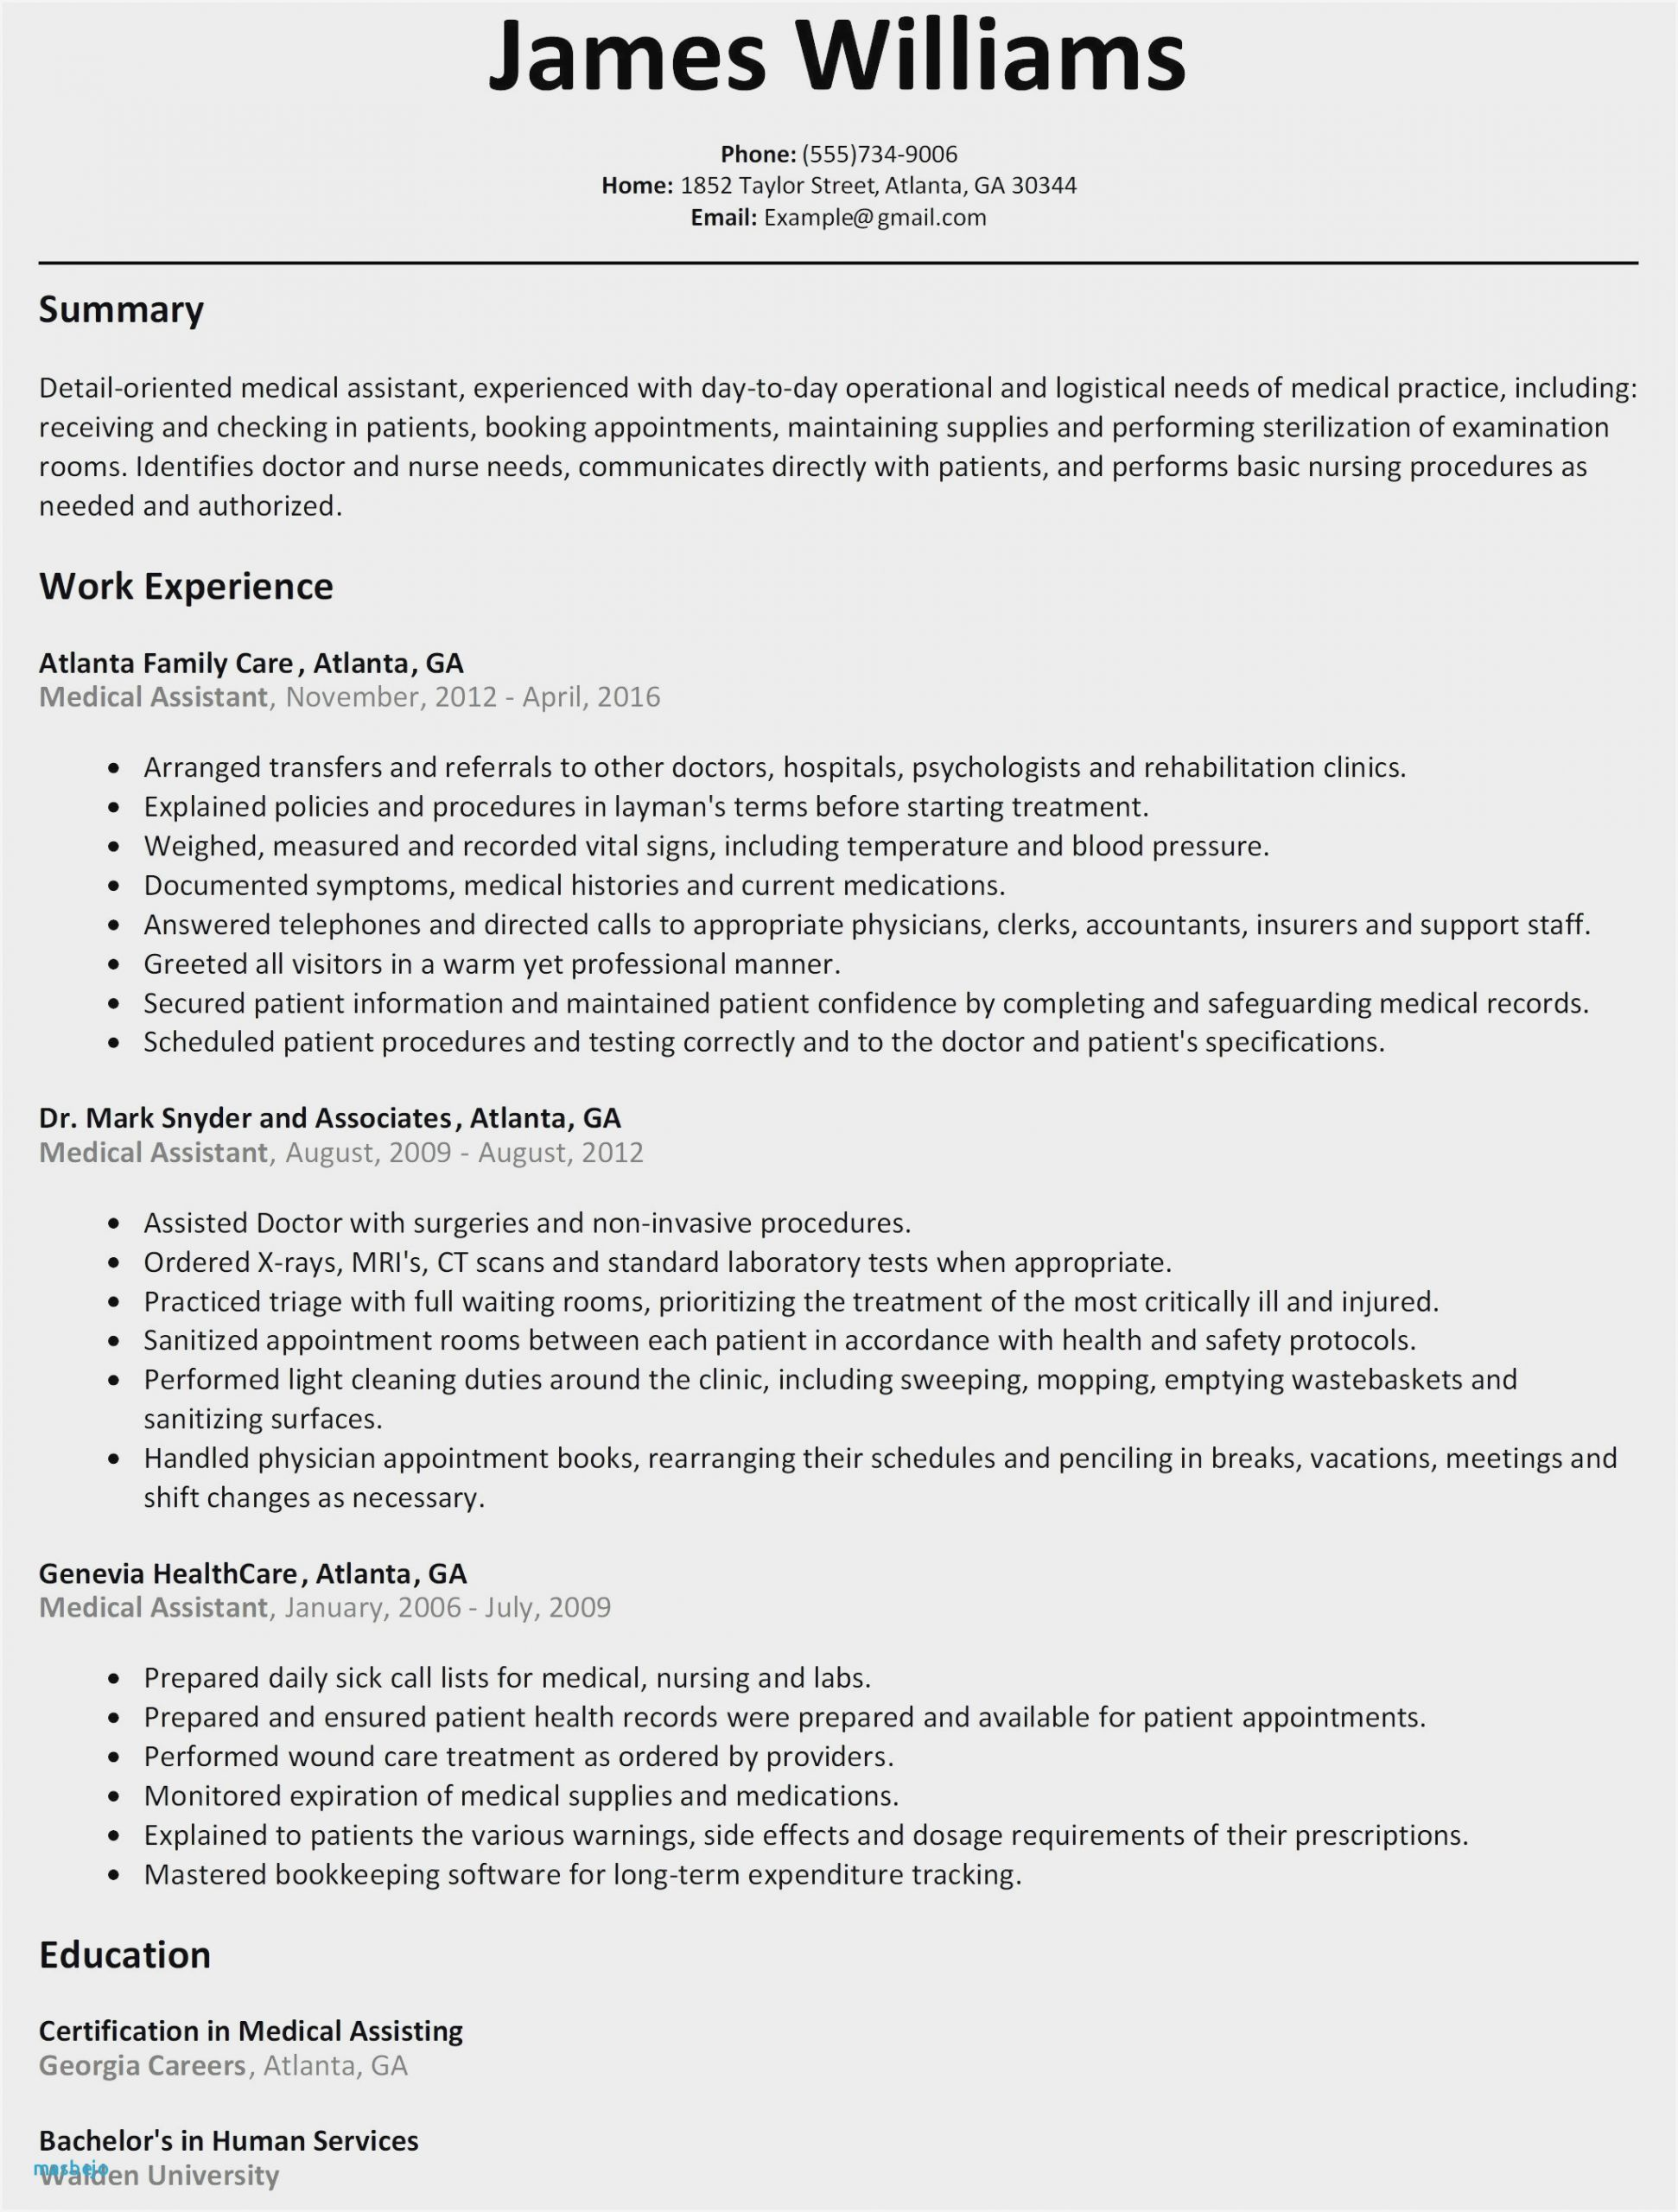 resume objective statement examples nursing sample great statements for resumes scaled Resume Great Objective Statements For Resumes